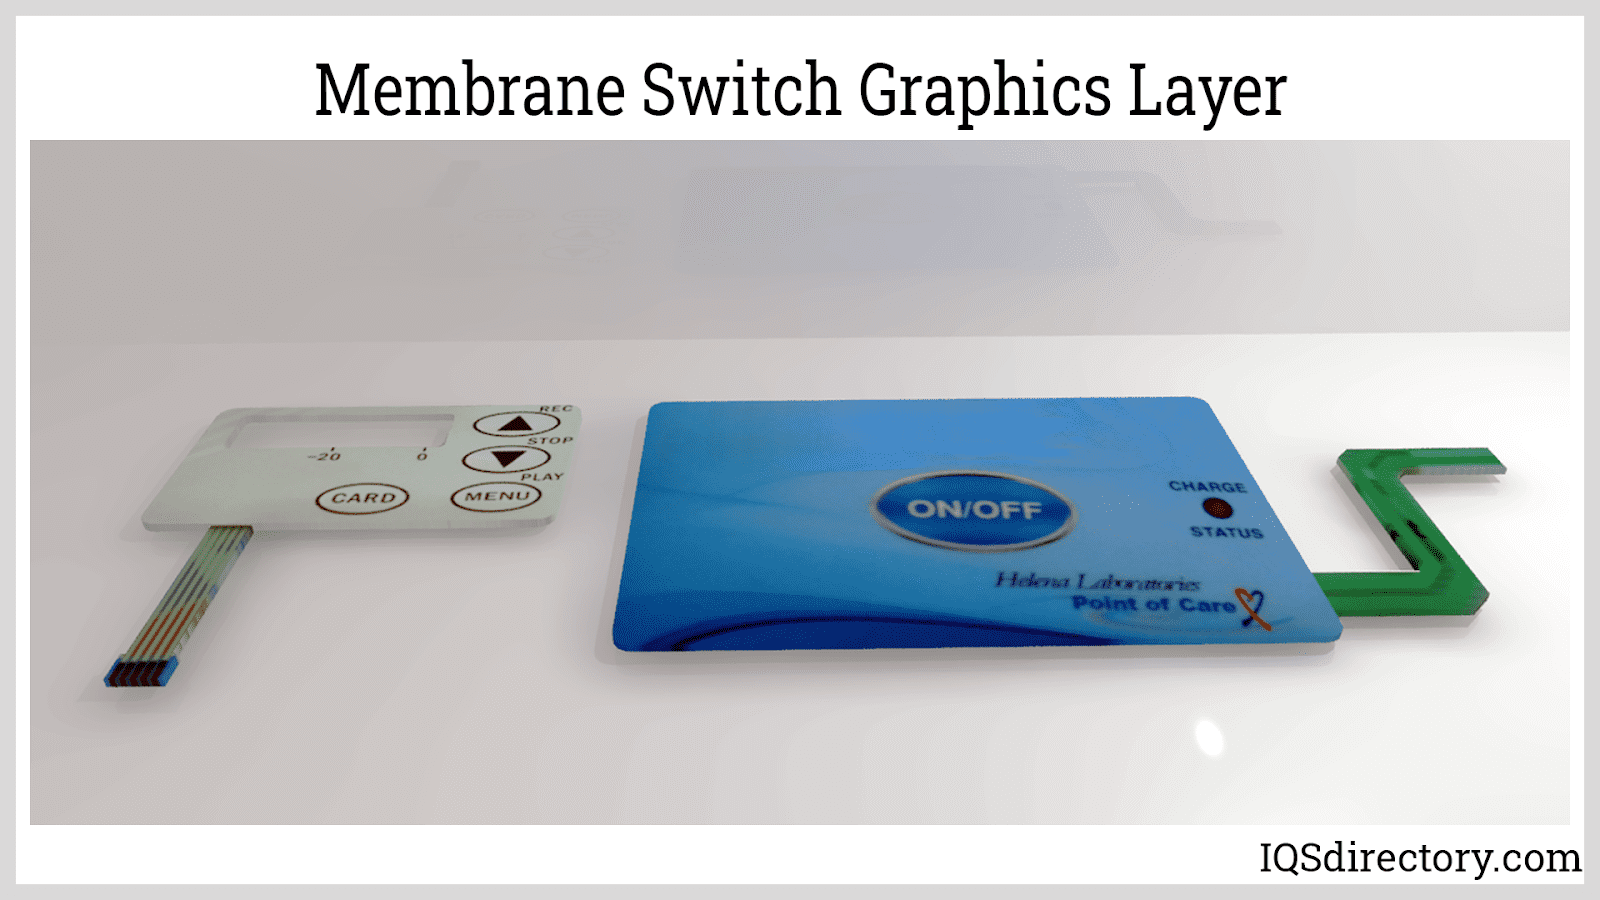 Membrane Switch Graphics Layer